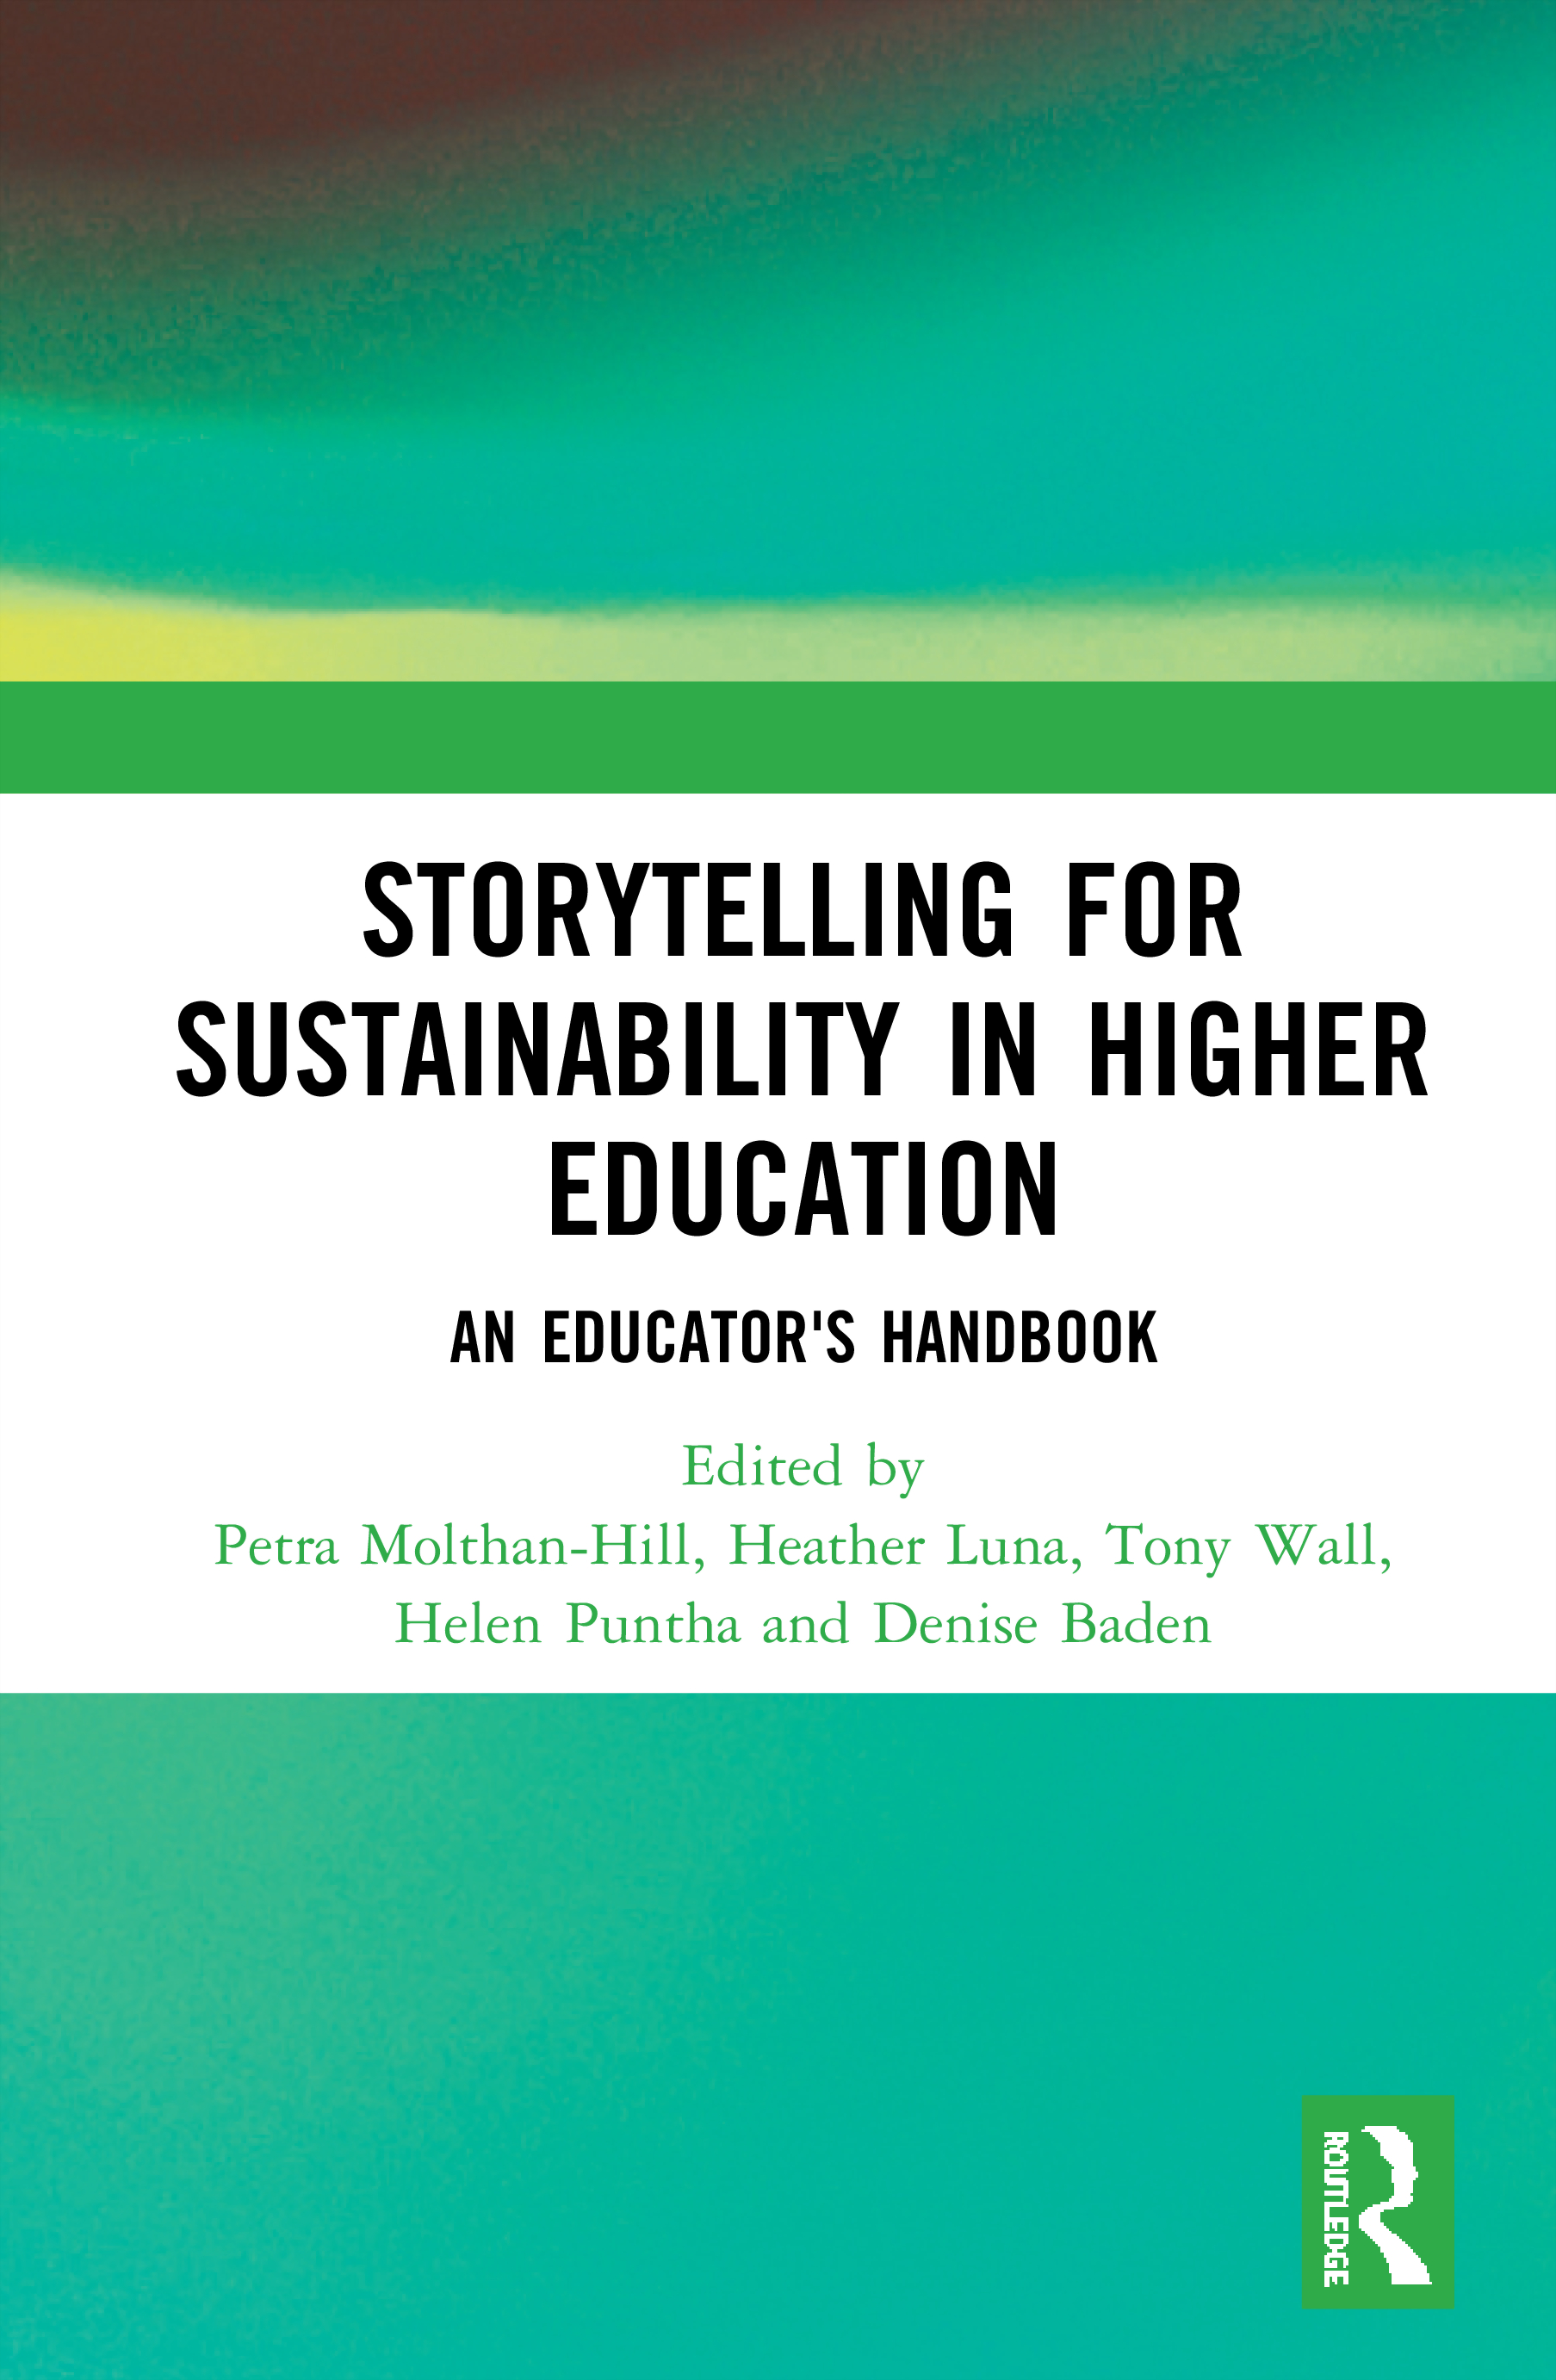 Storytelling for Sustainability in Higher Education: An Educator's Handbook book cover